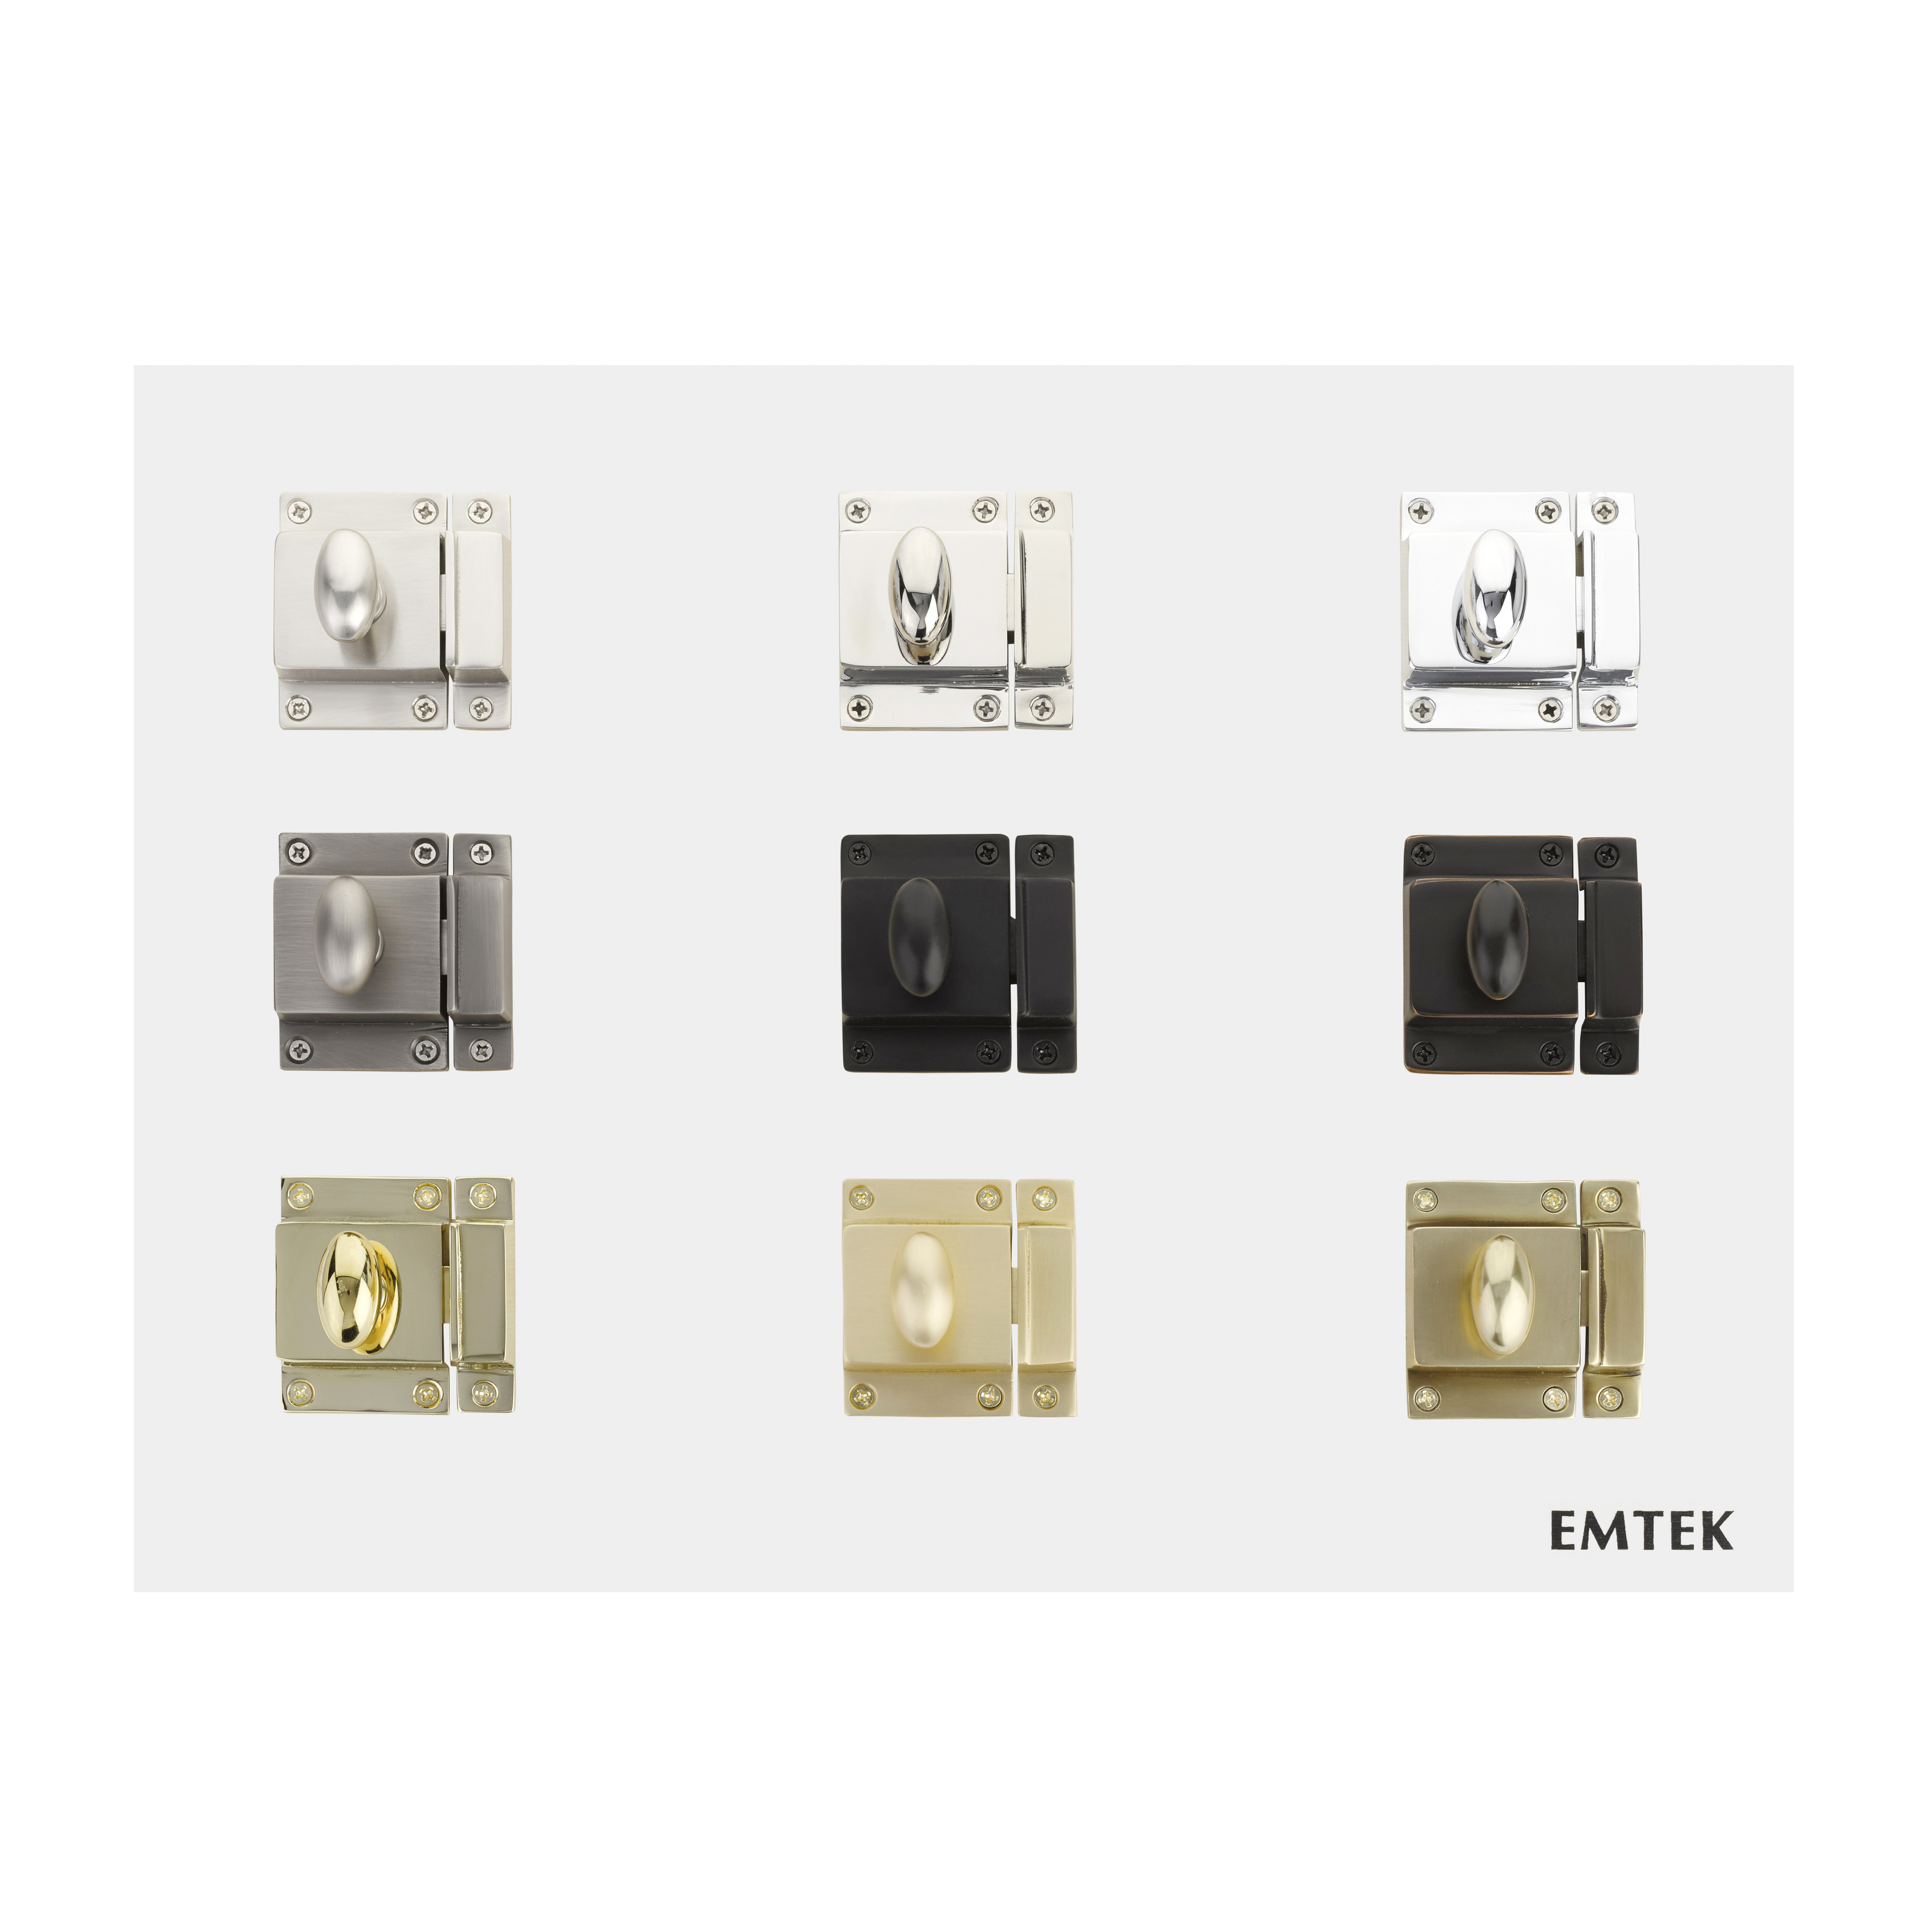 Displays Door Hardware And Cabinet Hardware Emtek Products Inc